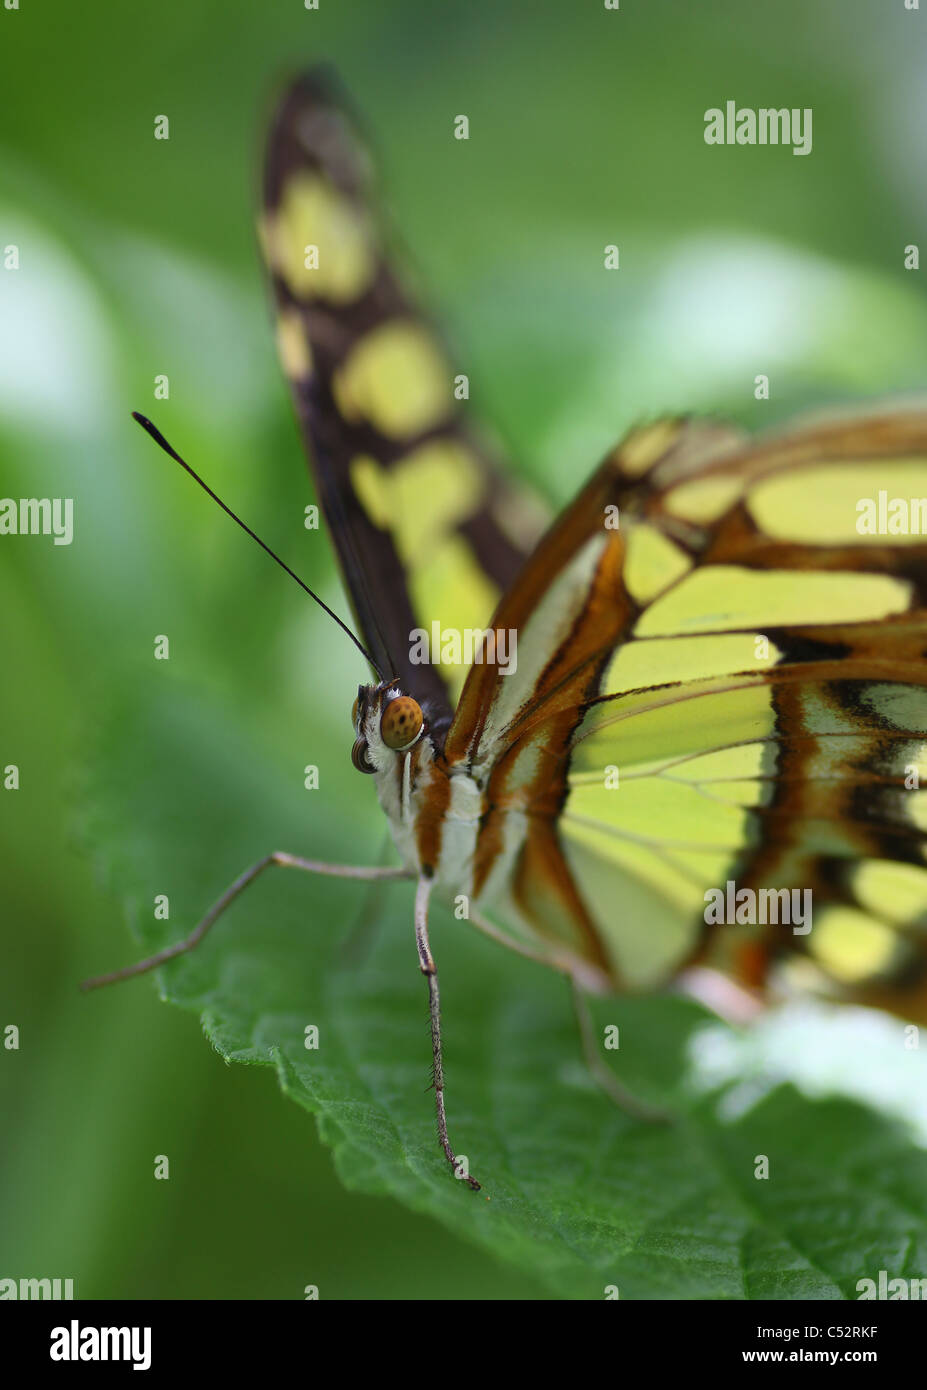 Siproeta stelenes, commonly known as the Malachite, is a neotropical brush-footed butterfly (family Nymphalidae) - Stock Image